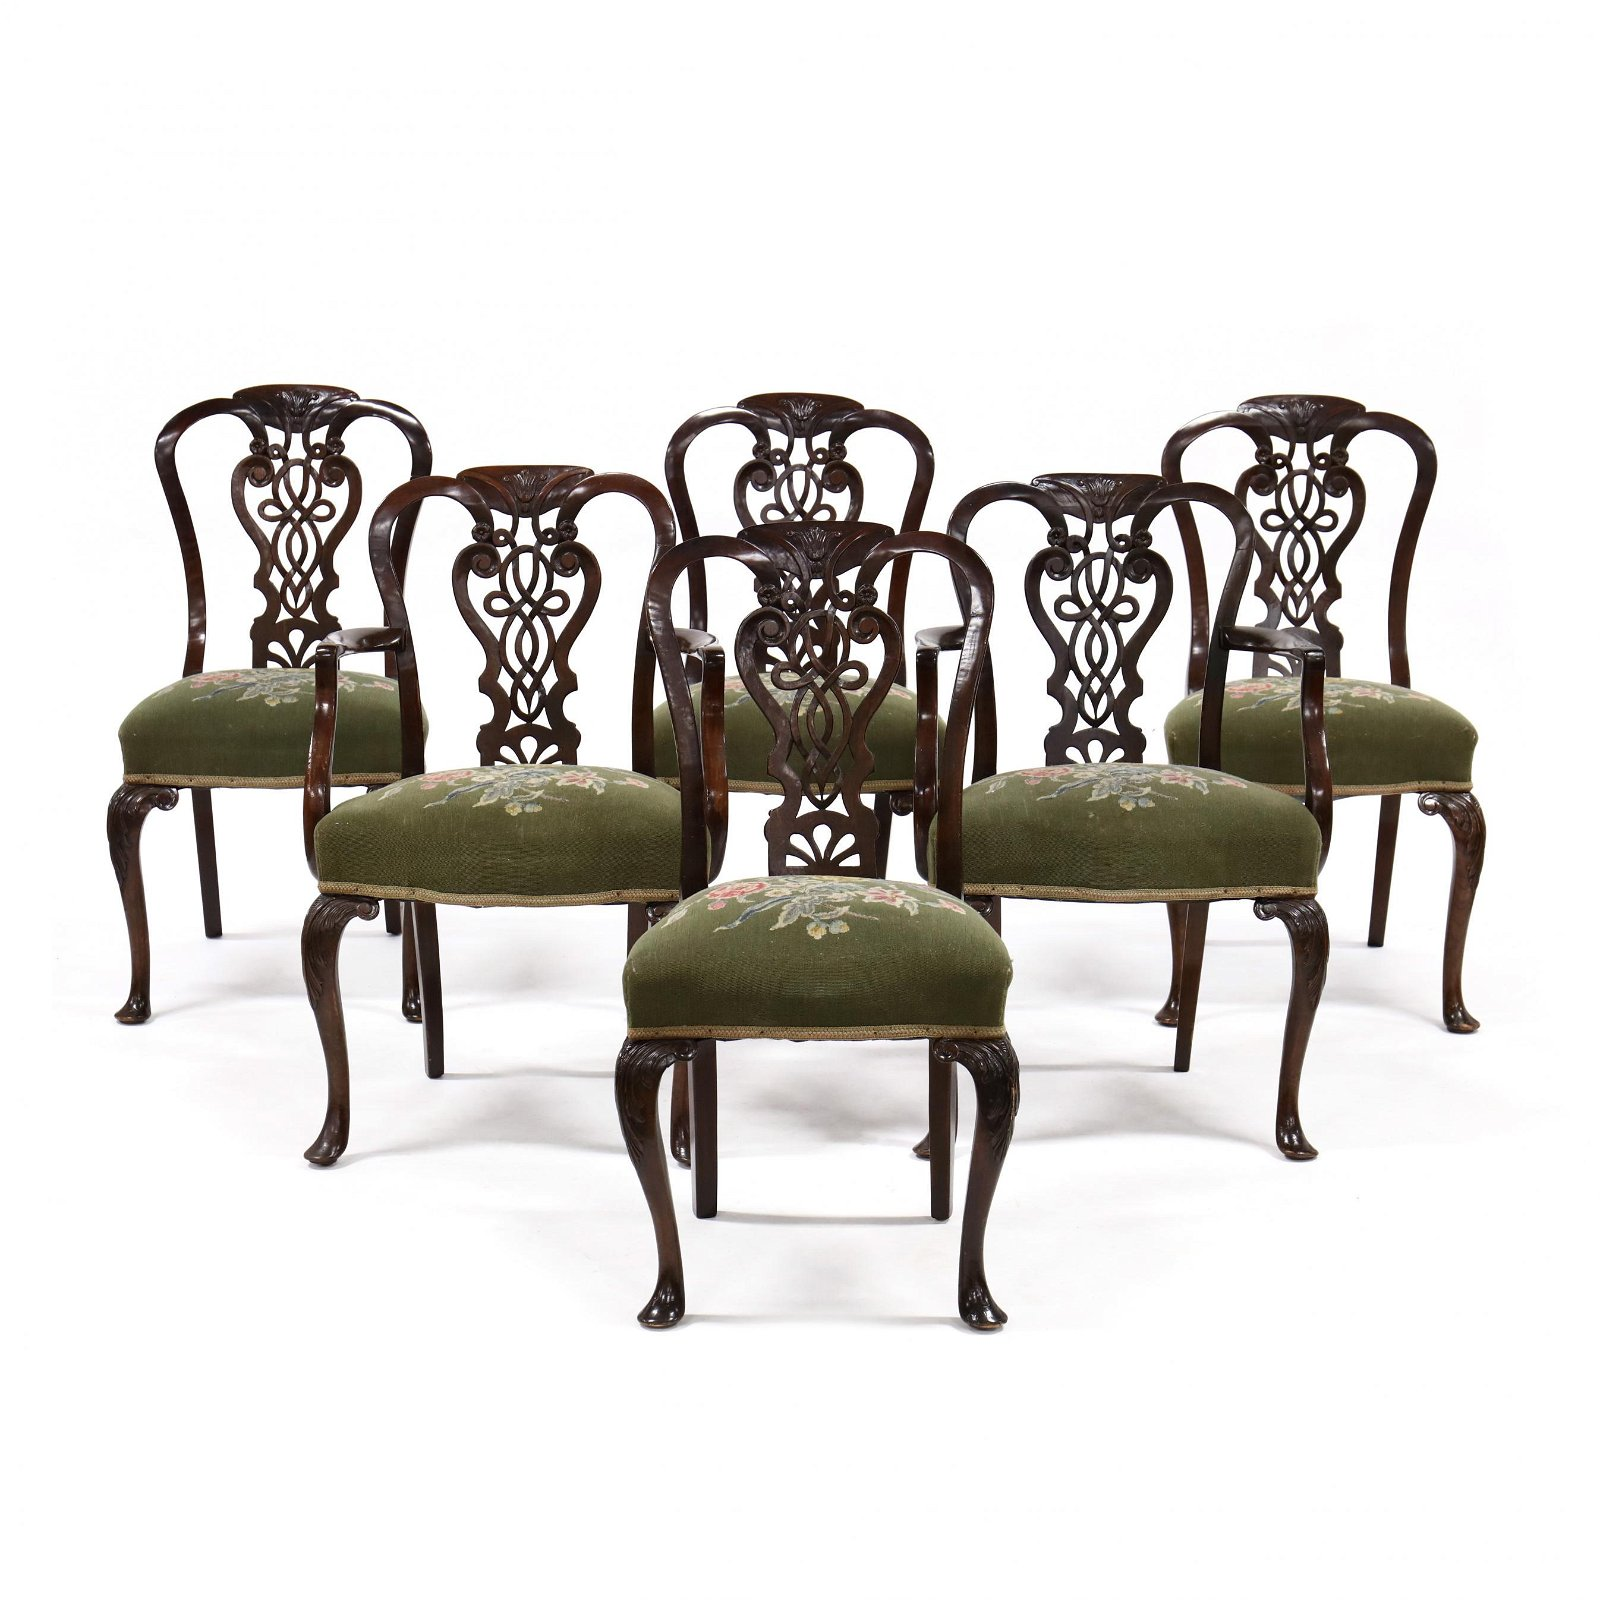 Set of Six Edwardian Carved Mahogany Dining Chairs